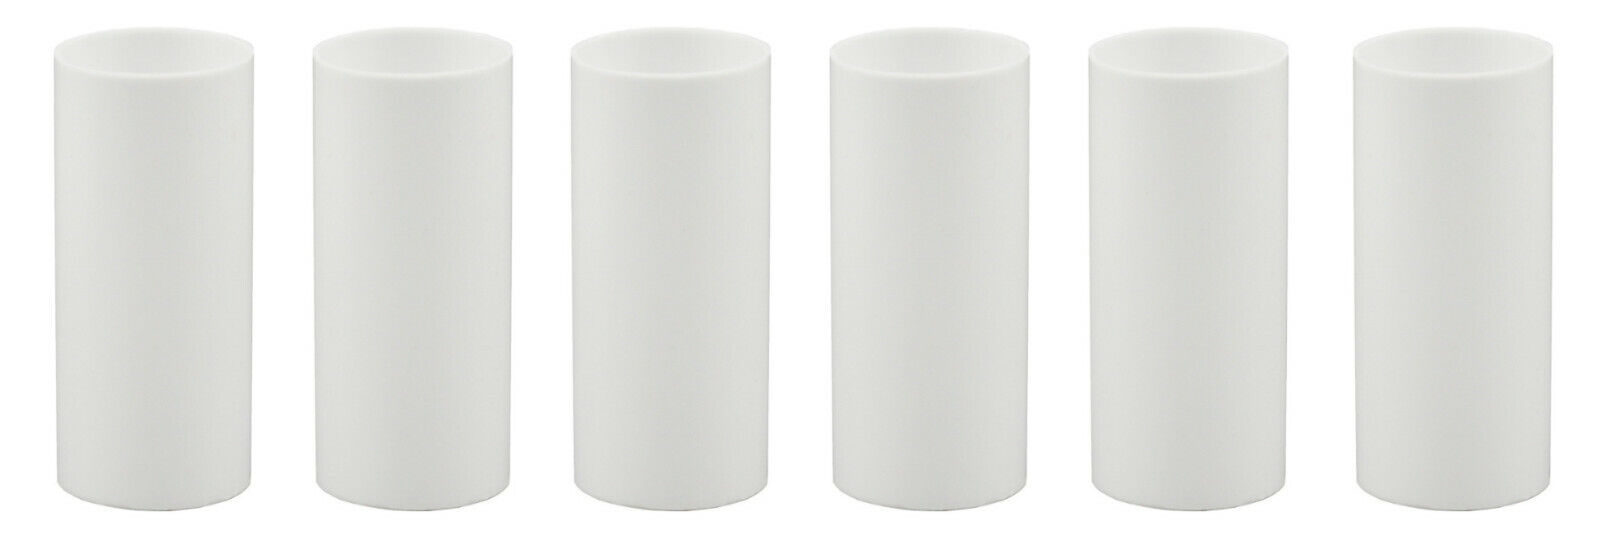 2 Inch Tall White Plastic Candle Cover For Candelabra Base Lamp Sockets, 6 Pack Collectibles